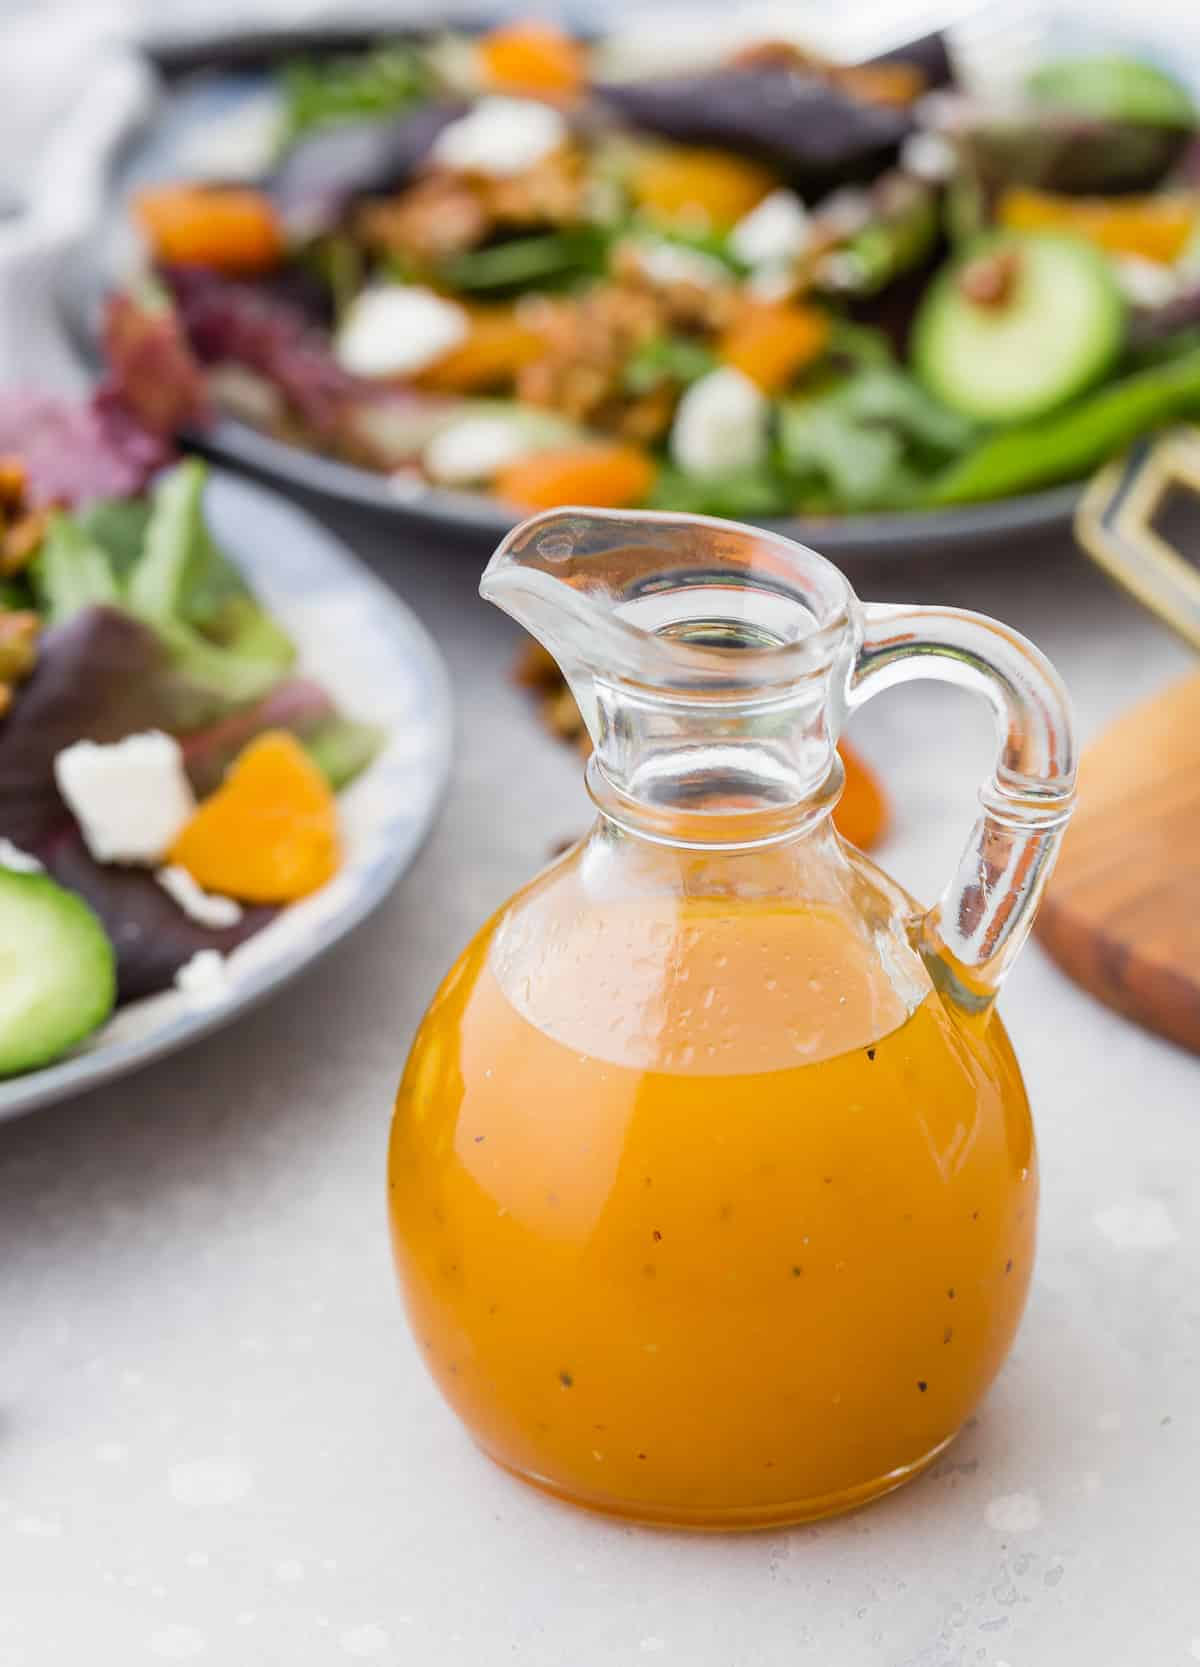 Apricot salad dressing in a small glass pitcher.